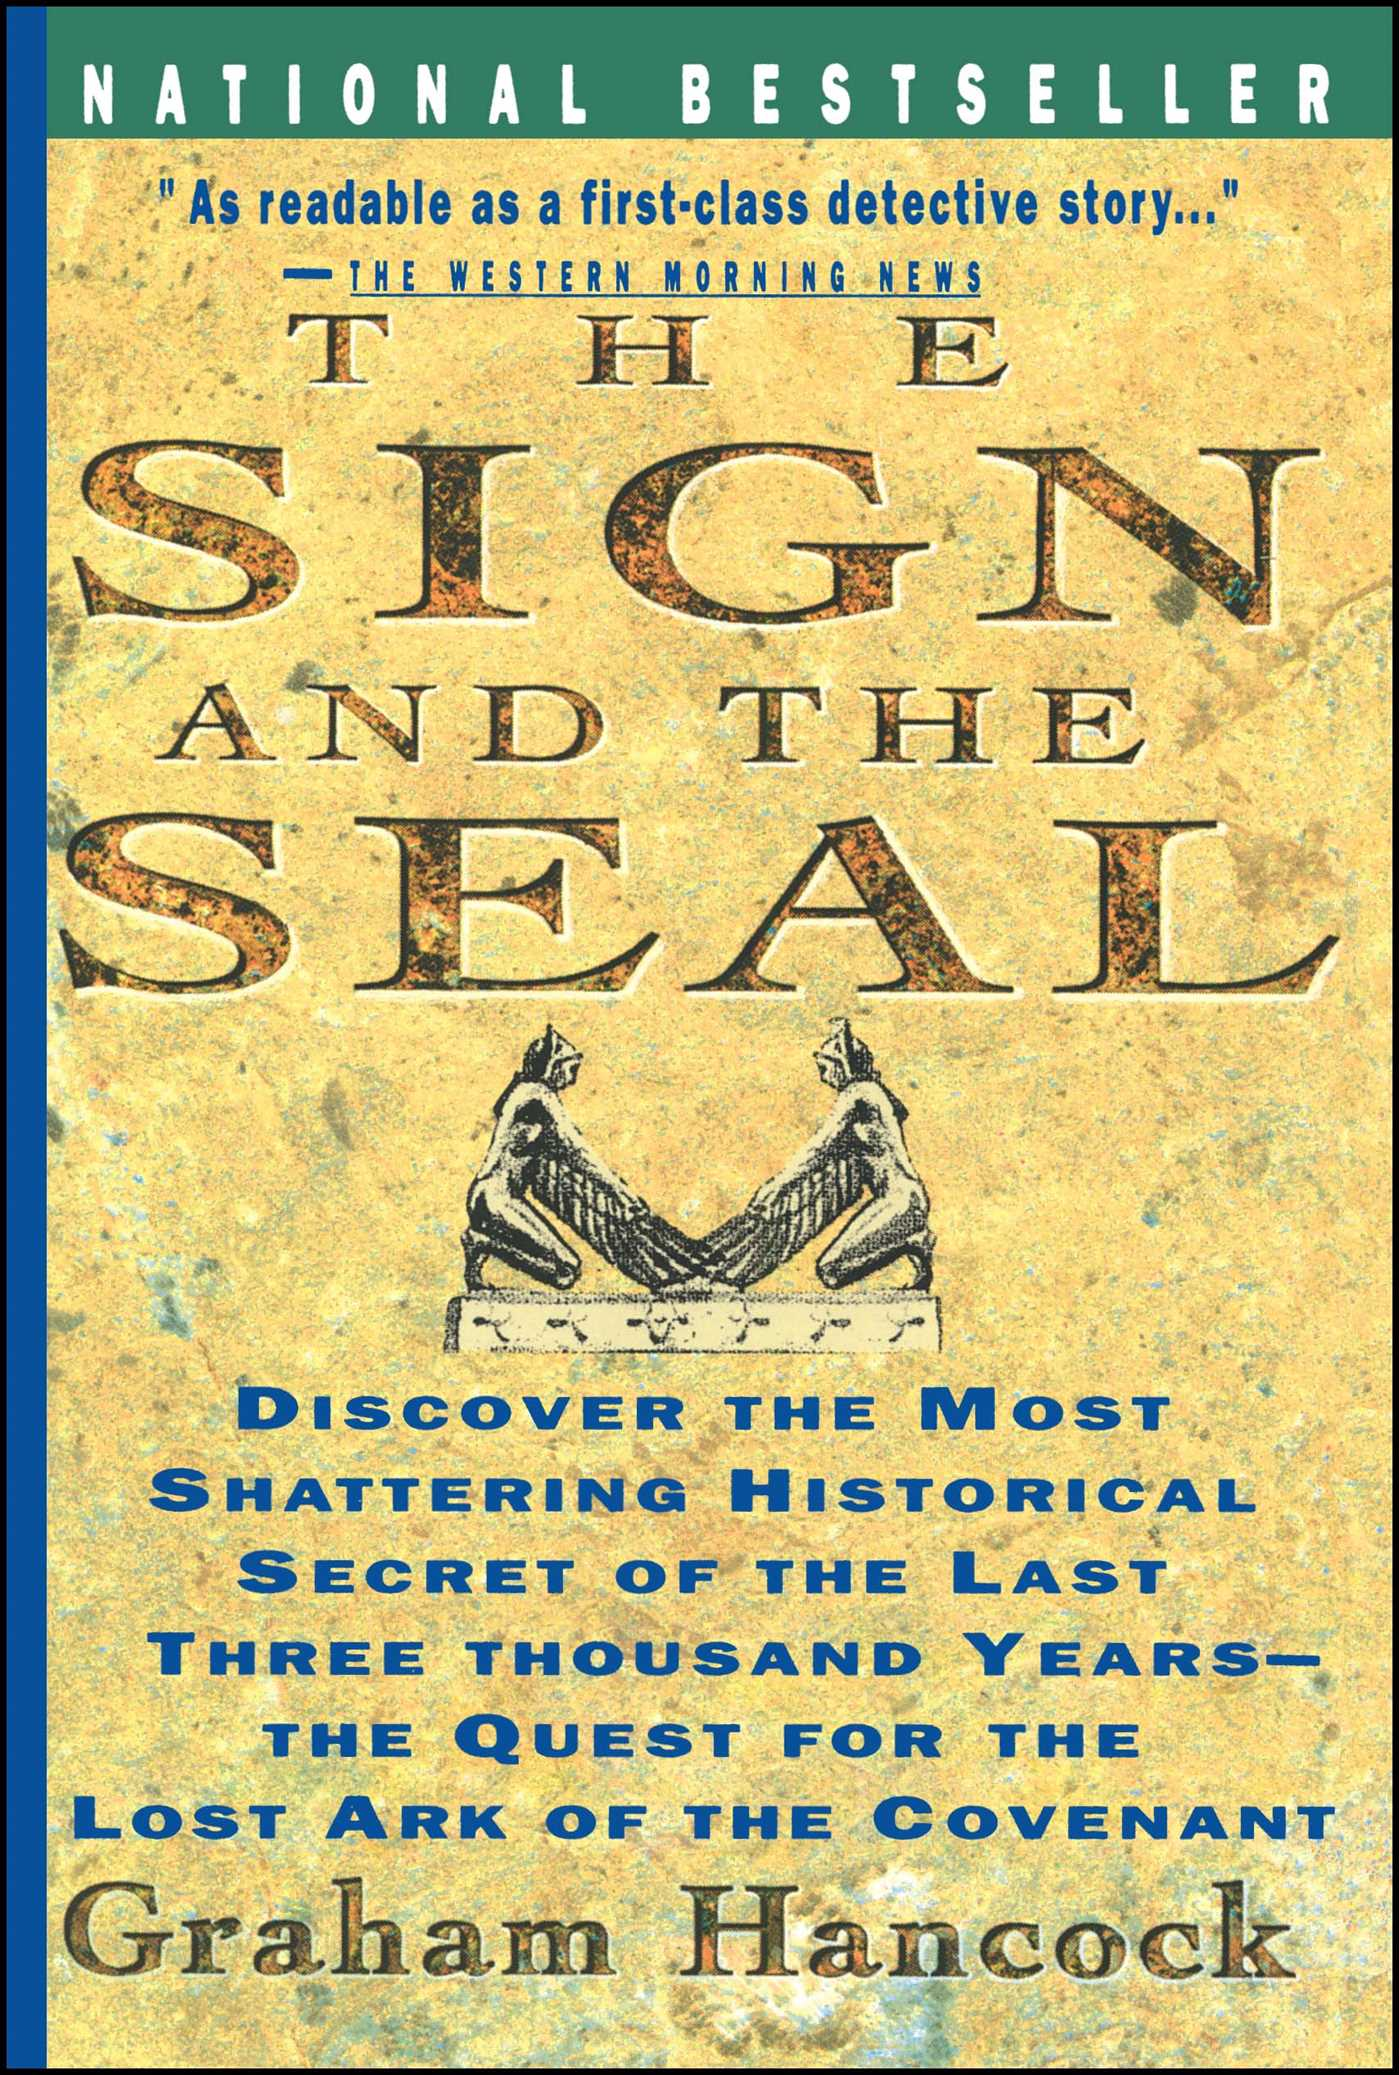 Sign and the seal 9780671865412 hr